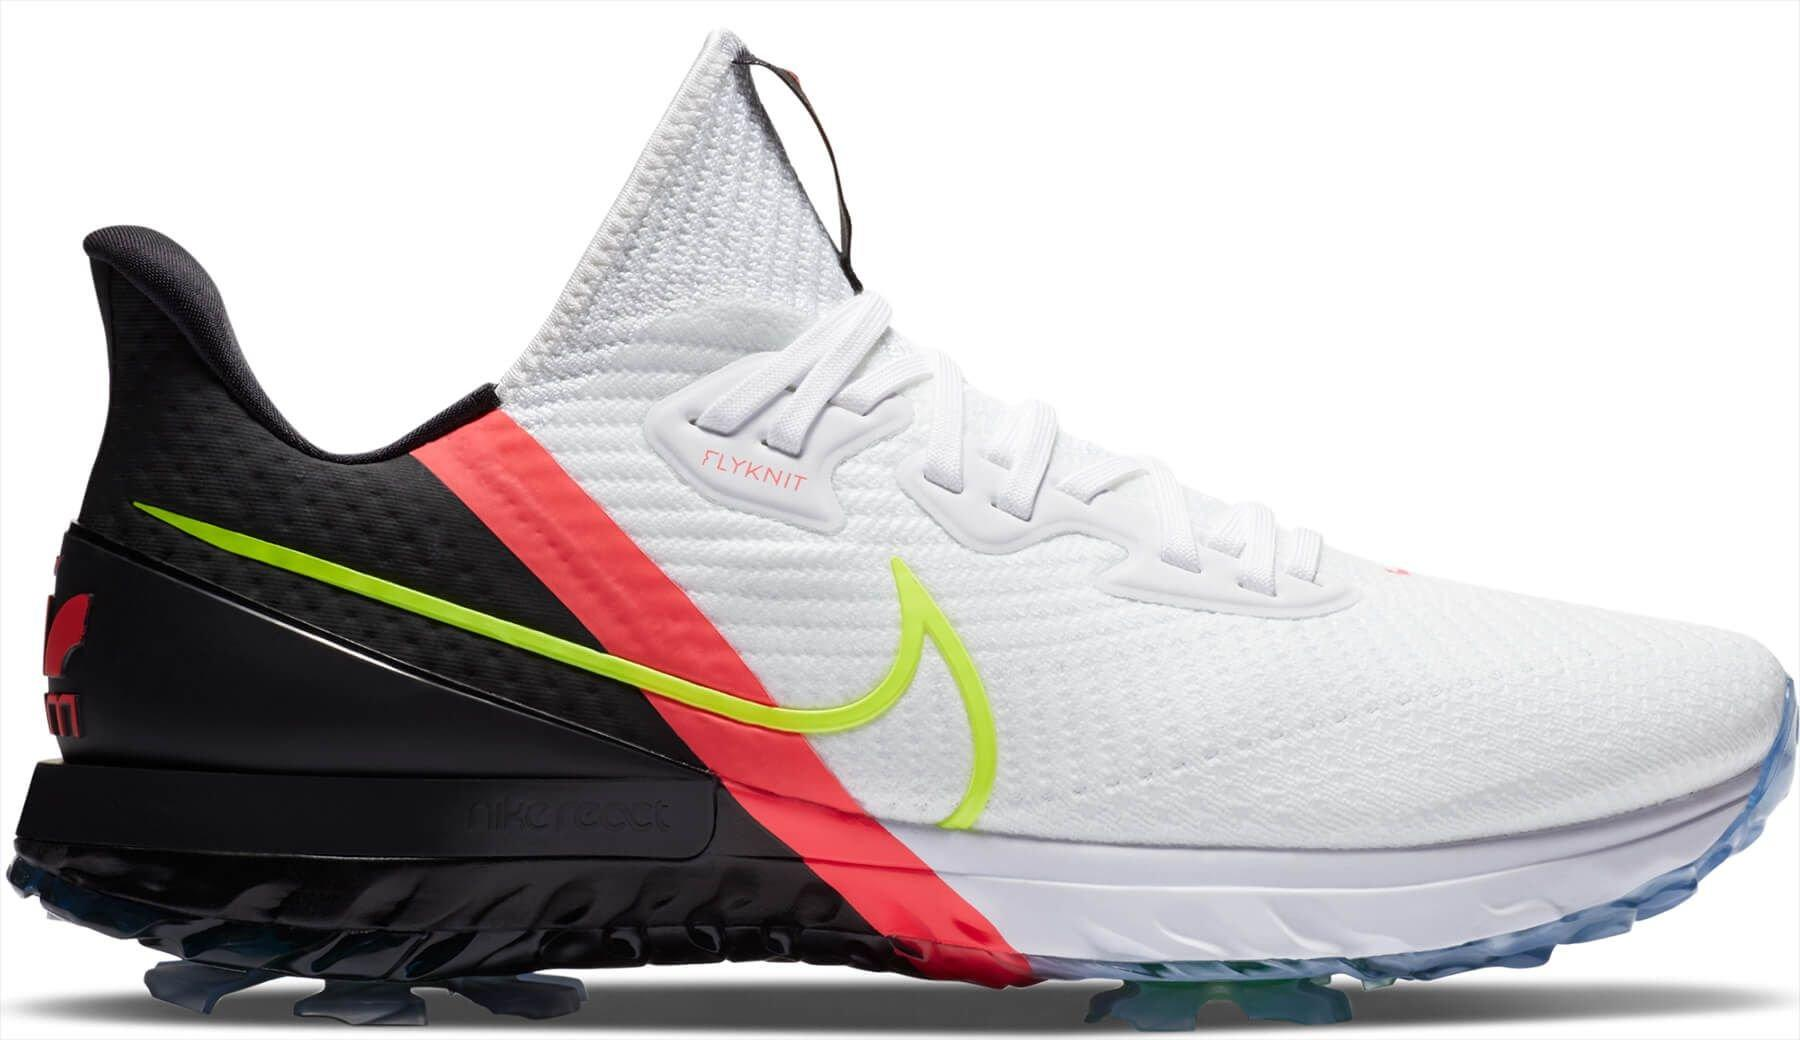 cordless scan Ambiguous  Nike Air Zoom Infinity Tour Golf Shoes 2020 White/Volt/Black/Flash Crimson  - Carl's Golfland